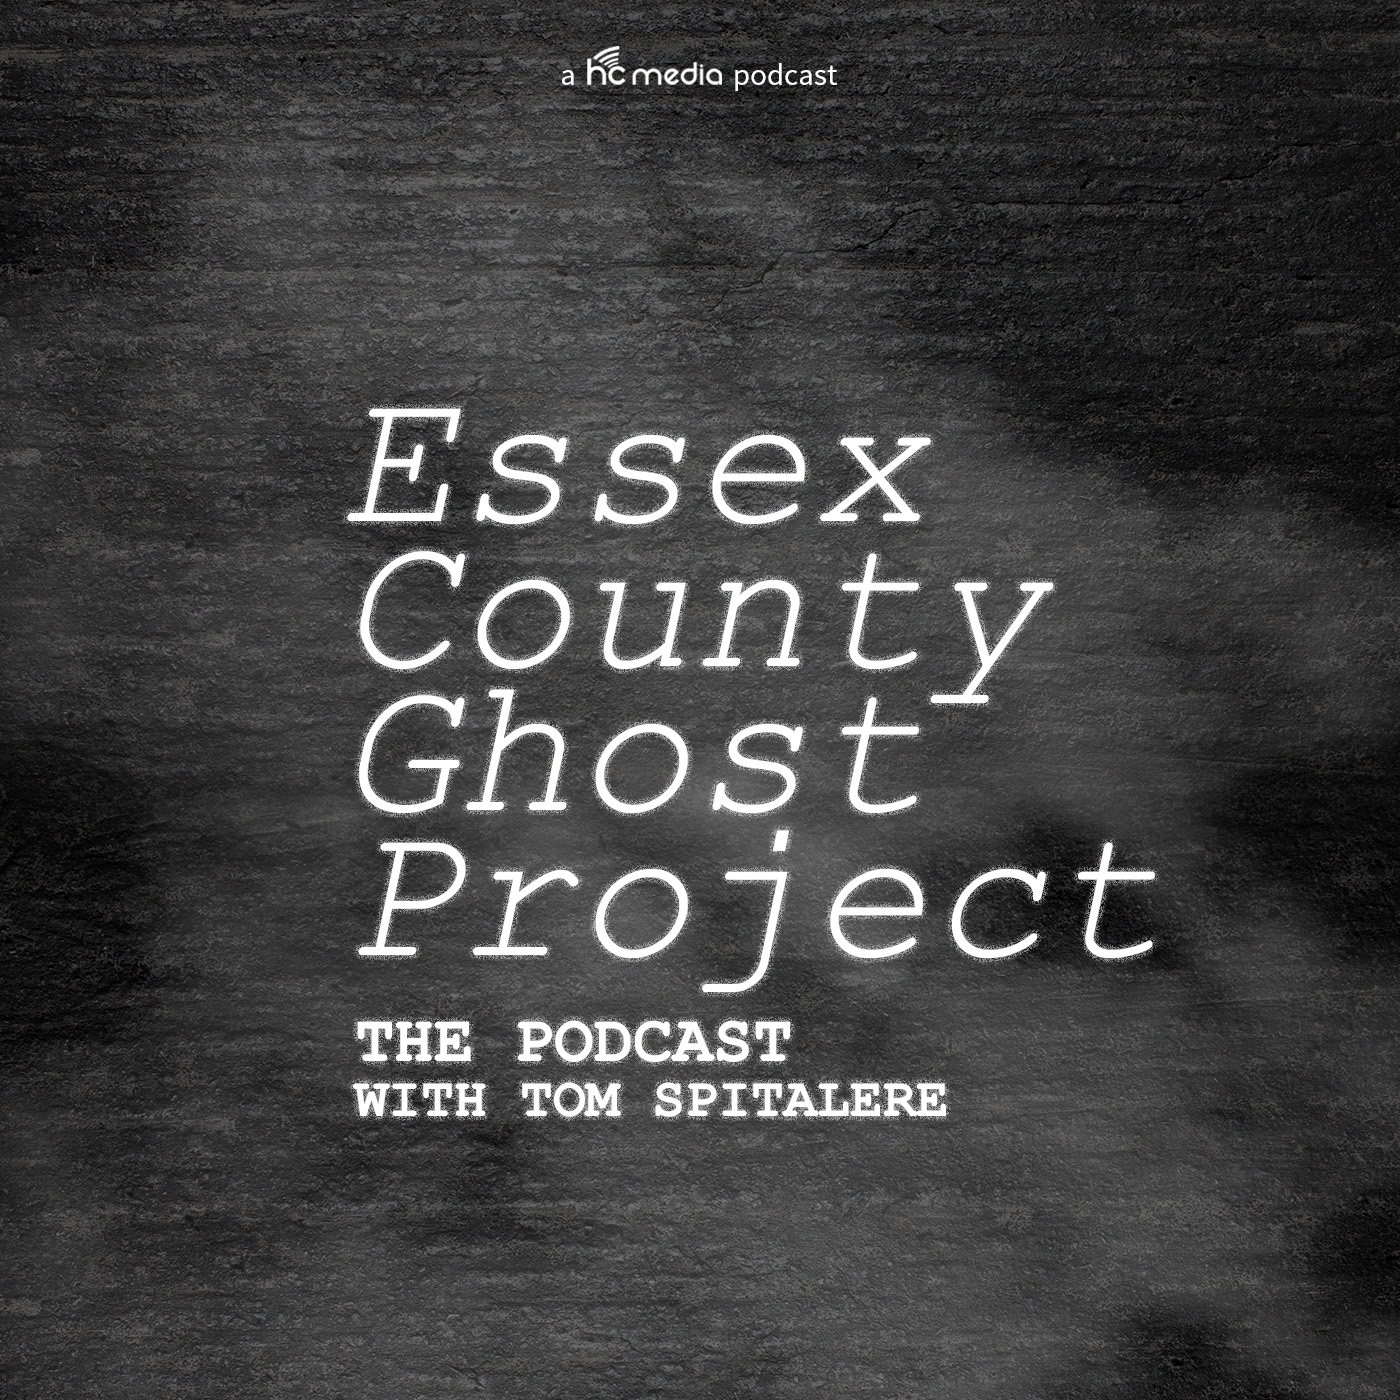 Essex County Ghost Project